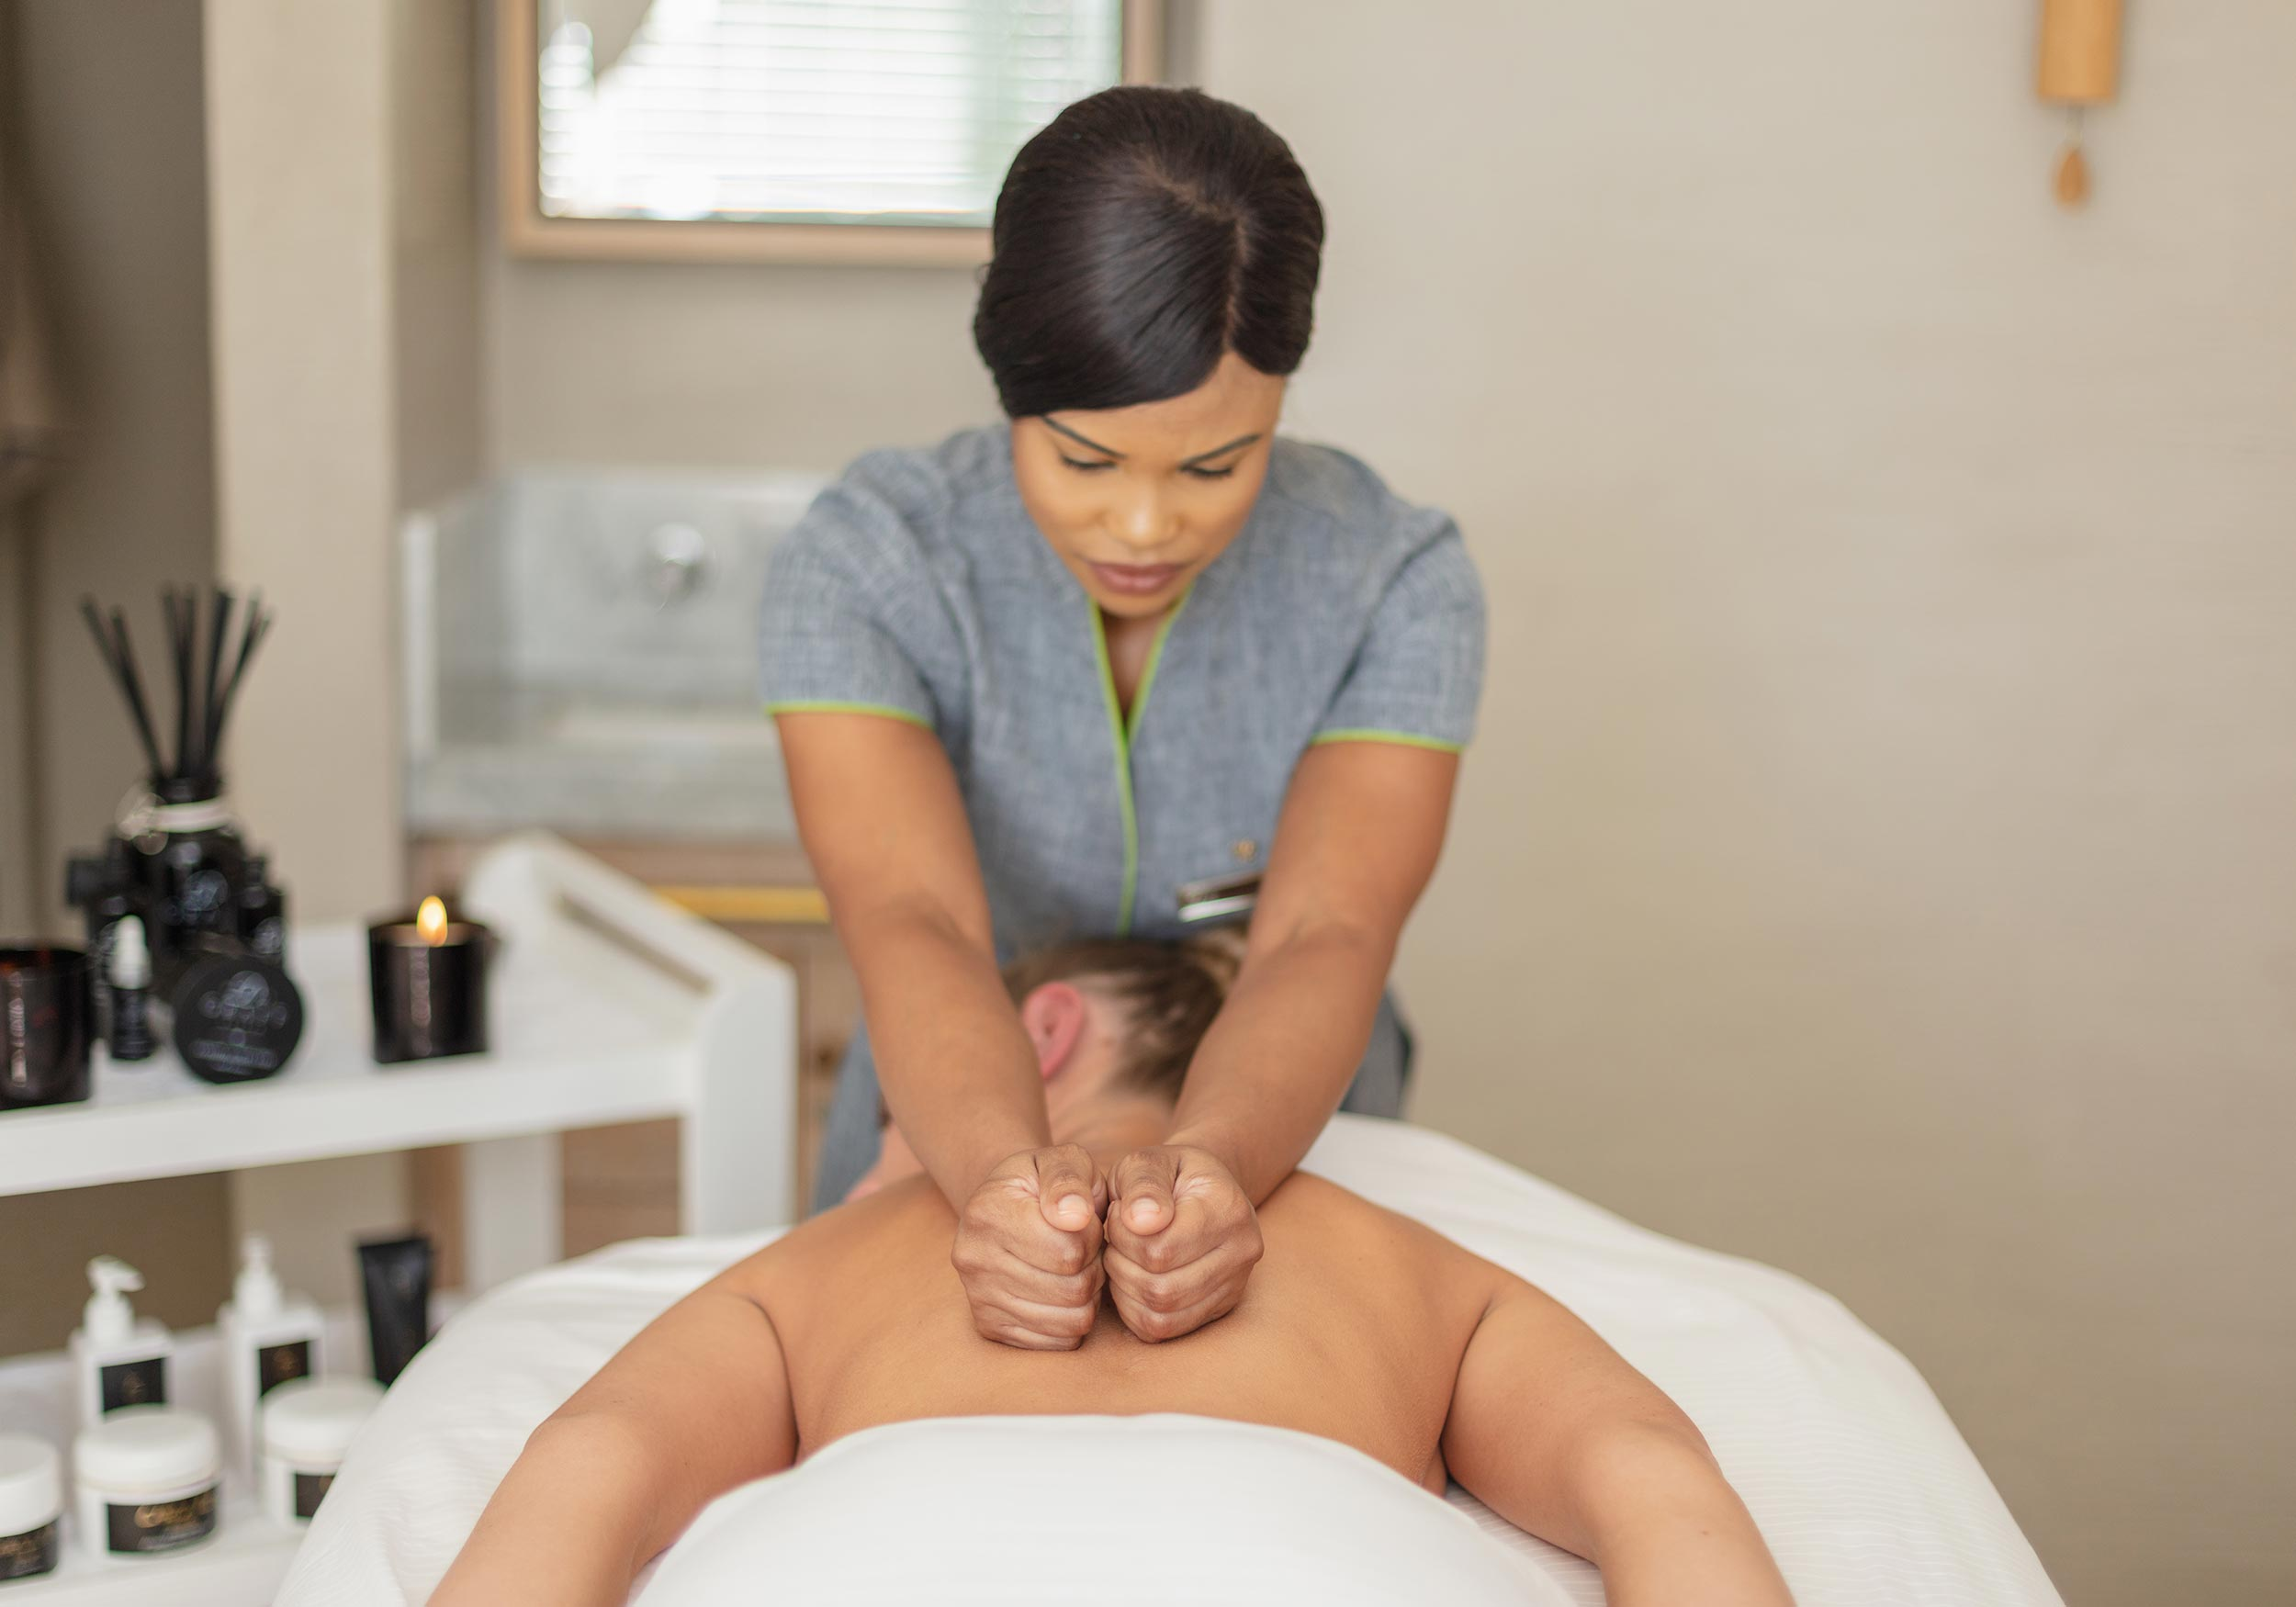 A lady enjoying a back massage